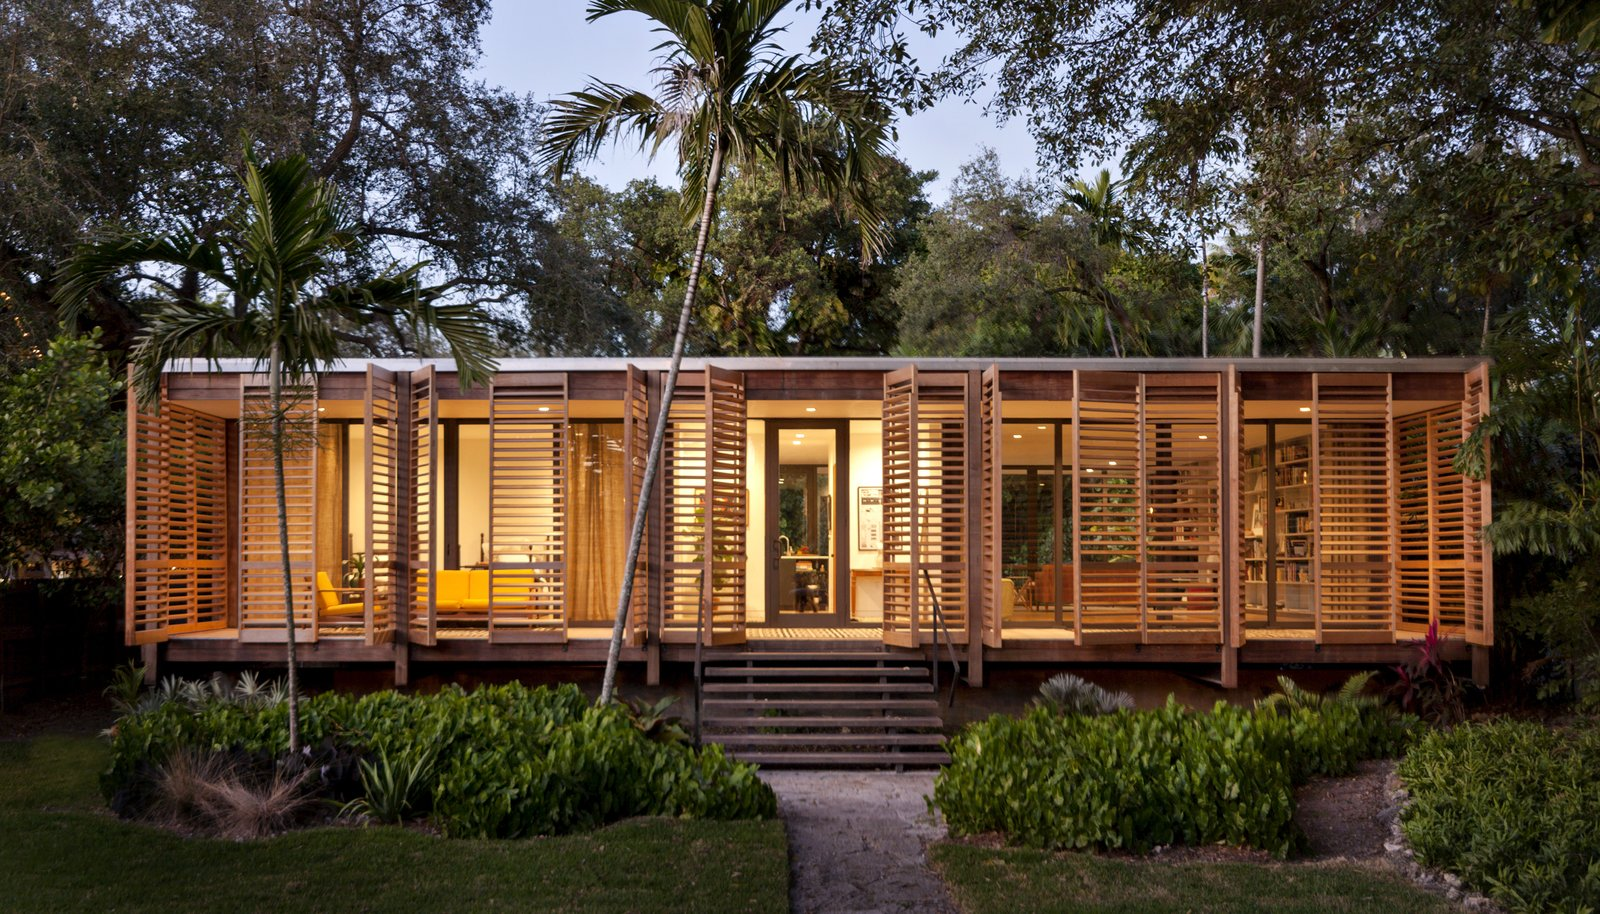 The 1,500-square-foot home features a striking interplay of sharp glass and soft wood shutters, creating a simple and practical building that's rich in cultural heritage. The home takes inspiration from many native building styles, including postwar tropical modernism, glass pavilion typology, and Florida cracker architecture. The dense ipe wood that clads the exterior and columns was chosen to withstand potential termite attacks and the damp tropical climate. Take a Peek Through These 10 Modern Front Doors - Photo 4 of 10